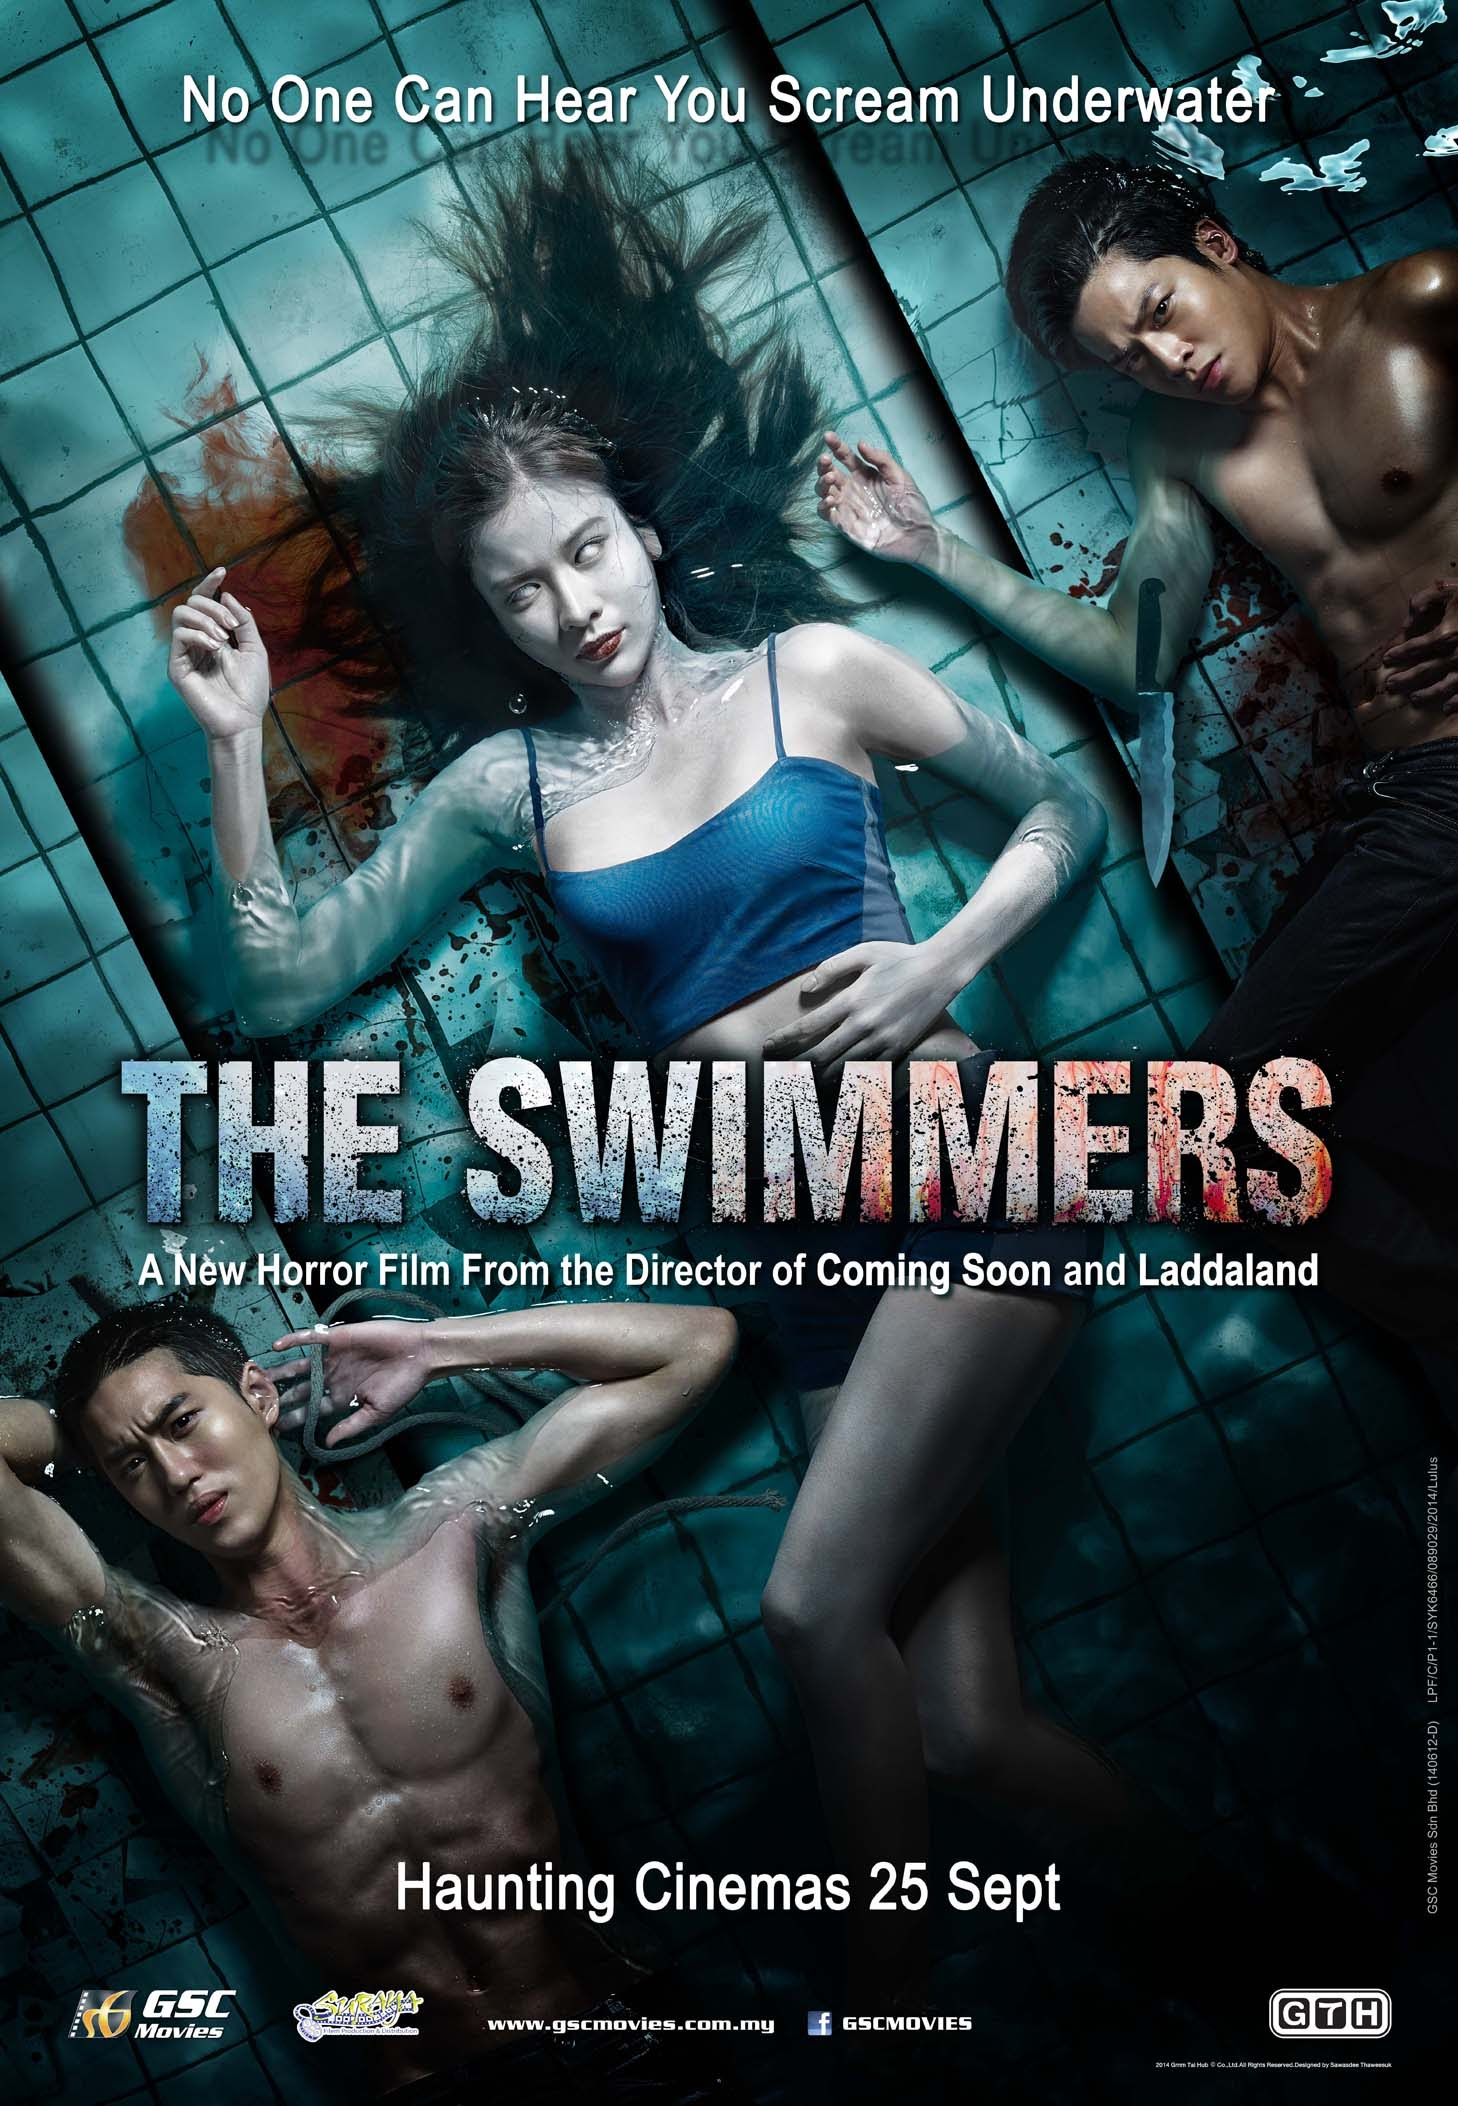 The swimmers photo